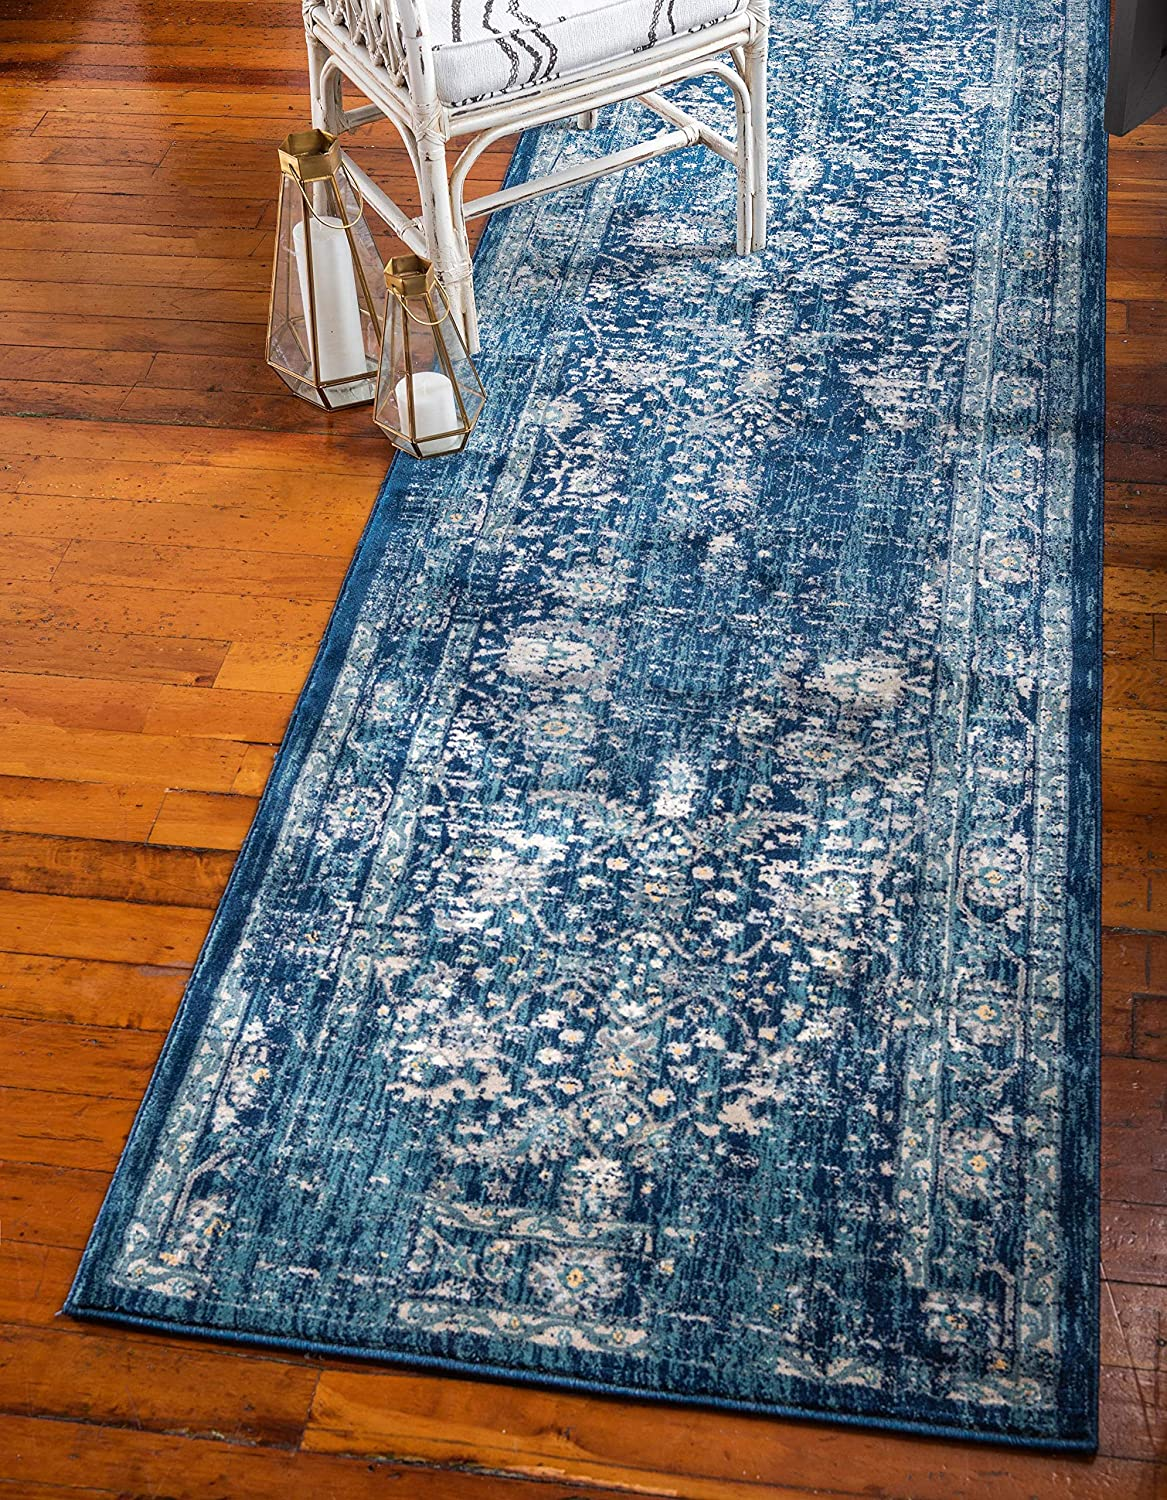 Unique Loom Oslo Traditional Botanical Runner Rug, 3 x 13 Feet, Navy Blue/Turquoise